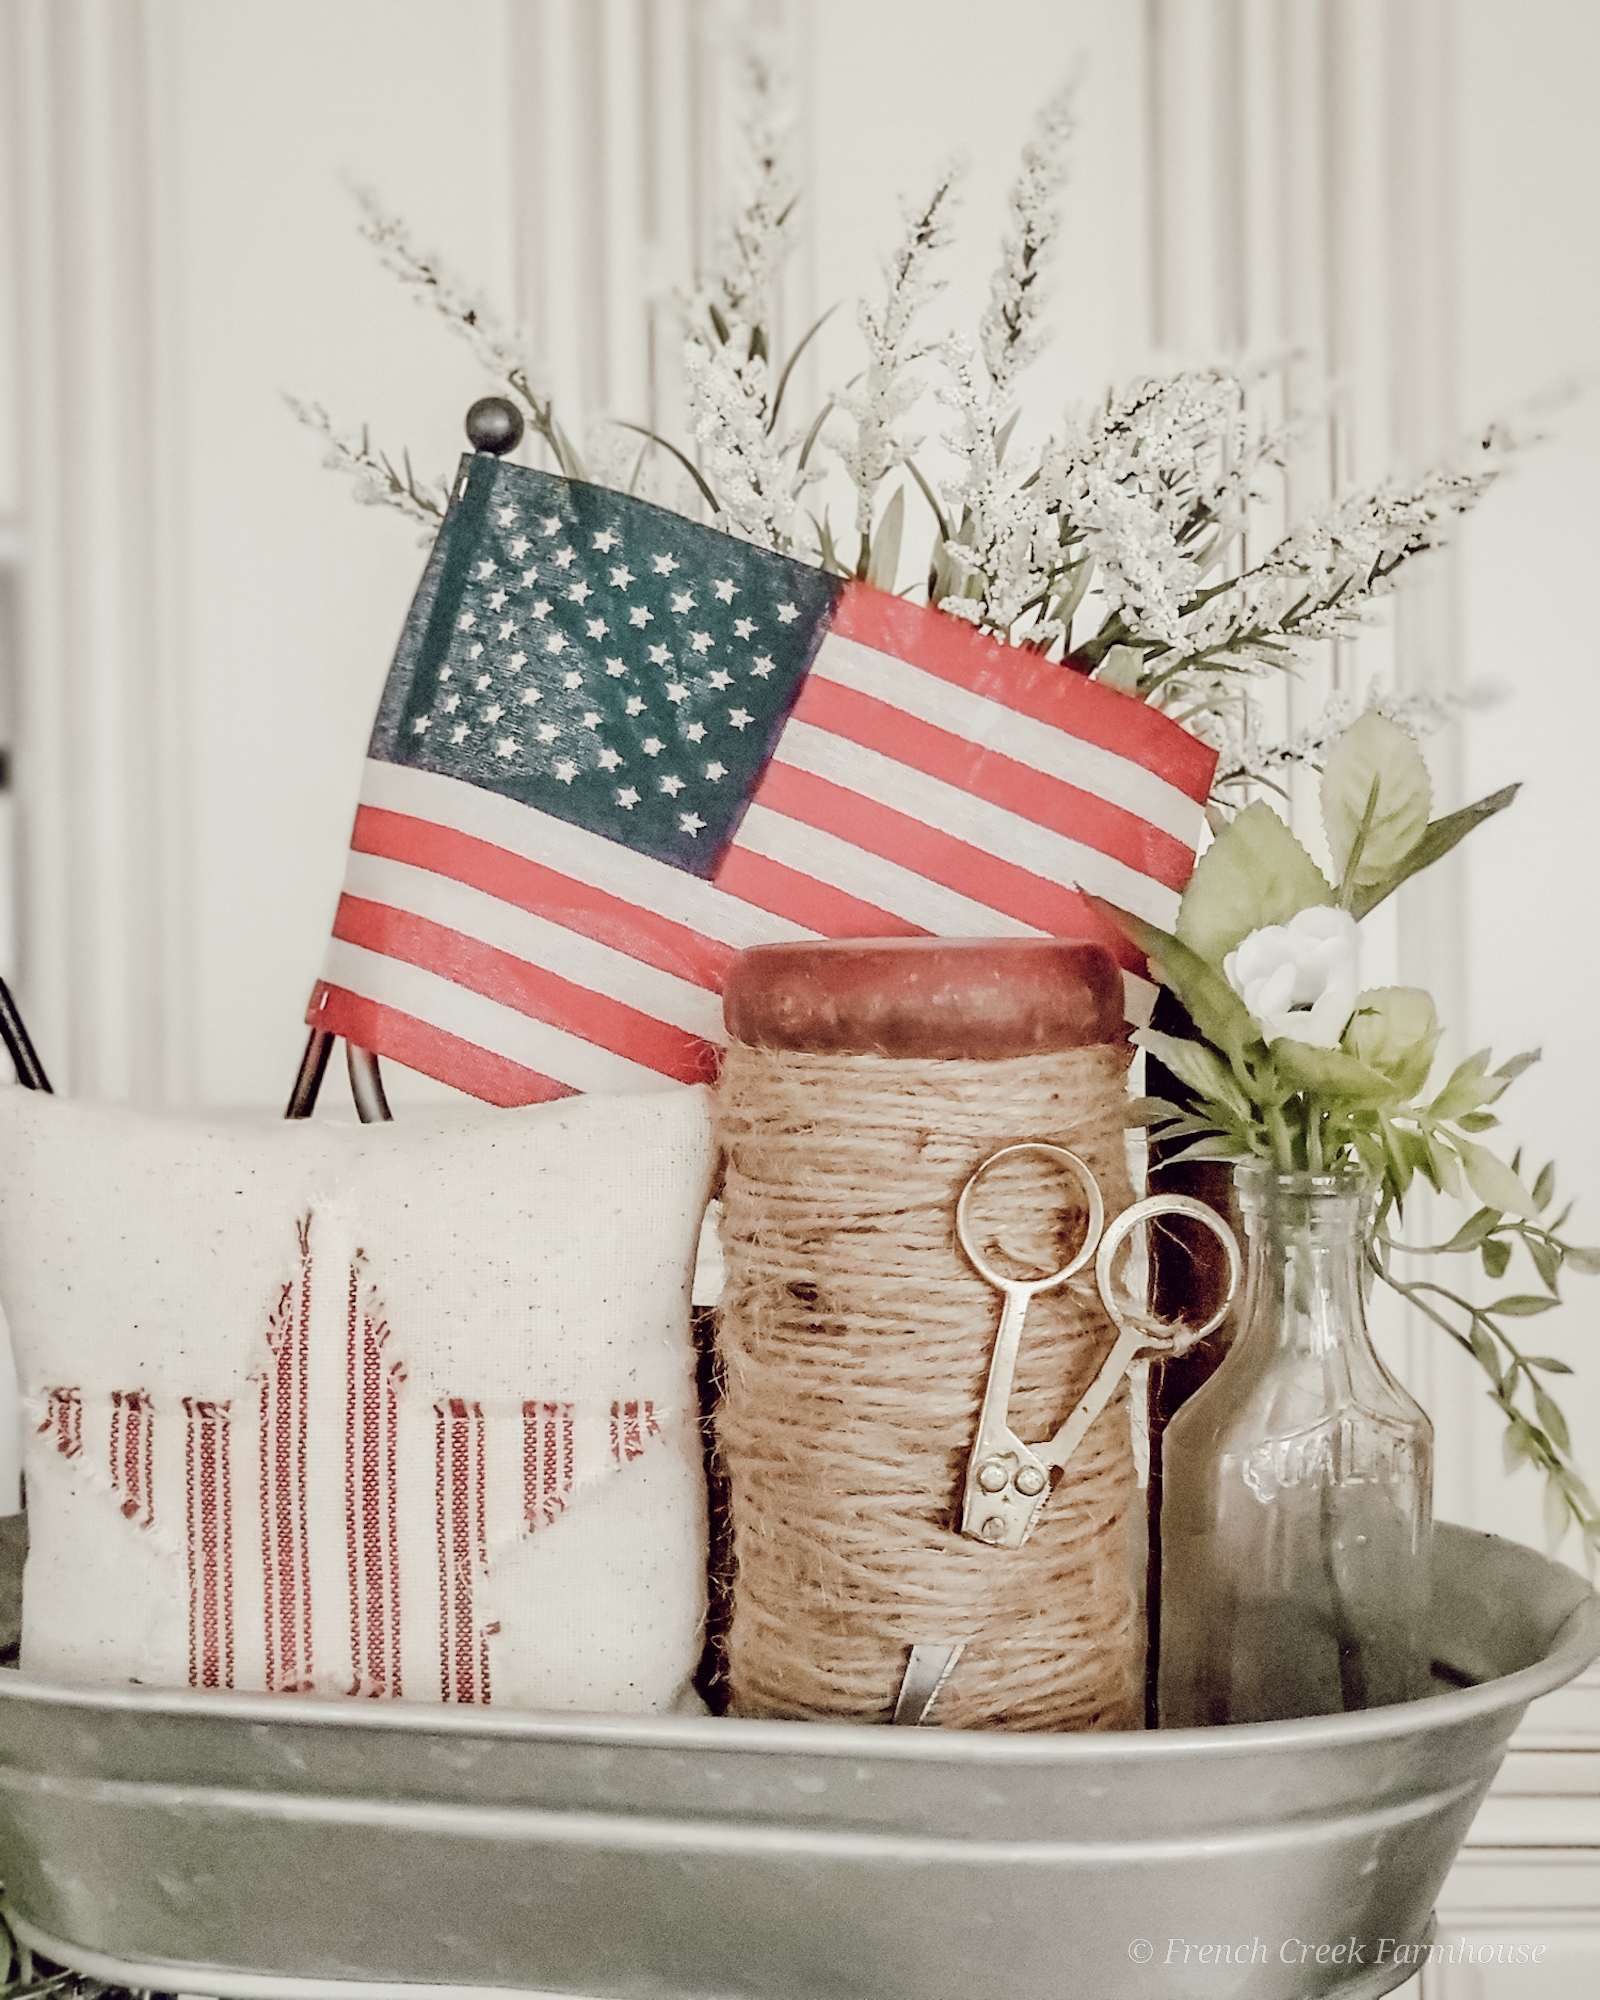 A vintage wooden spool and American flag decor